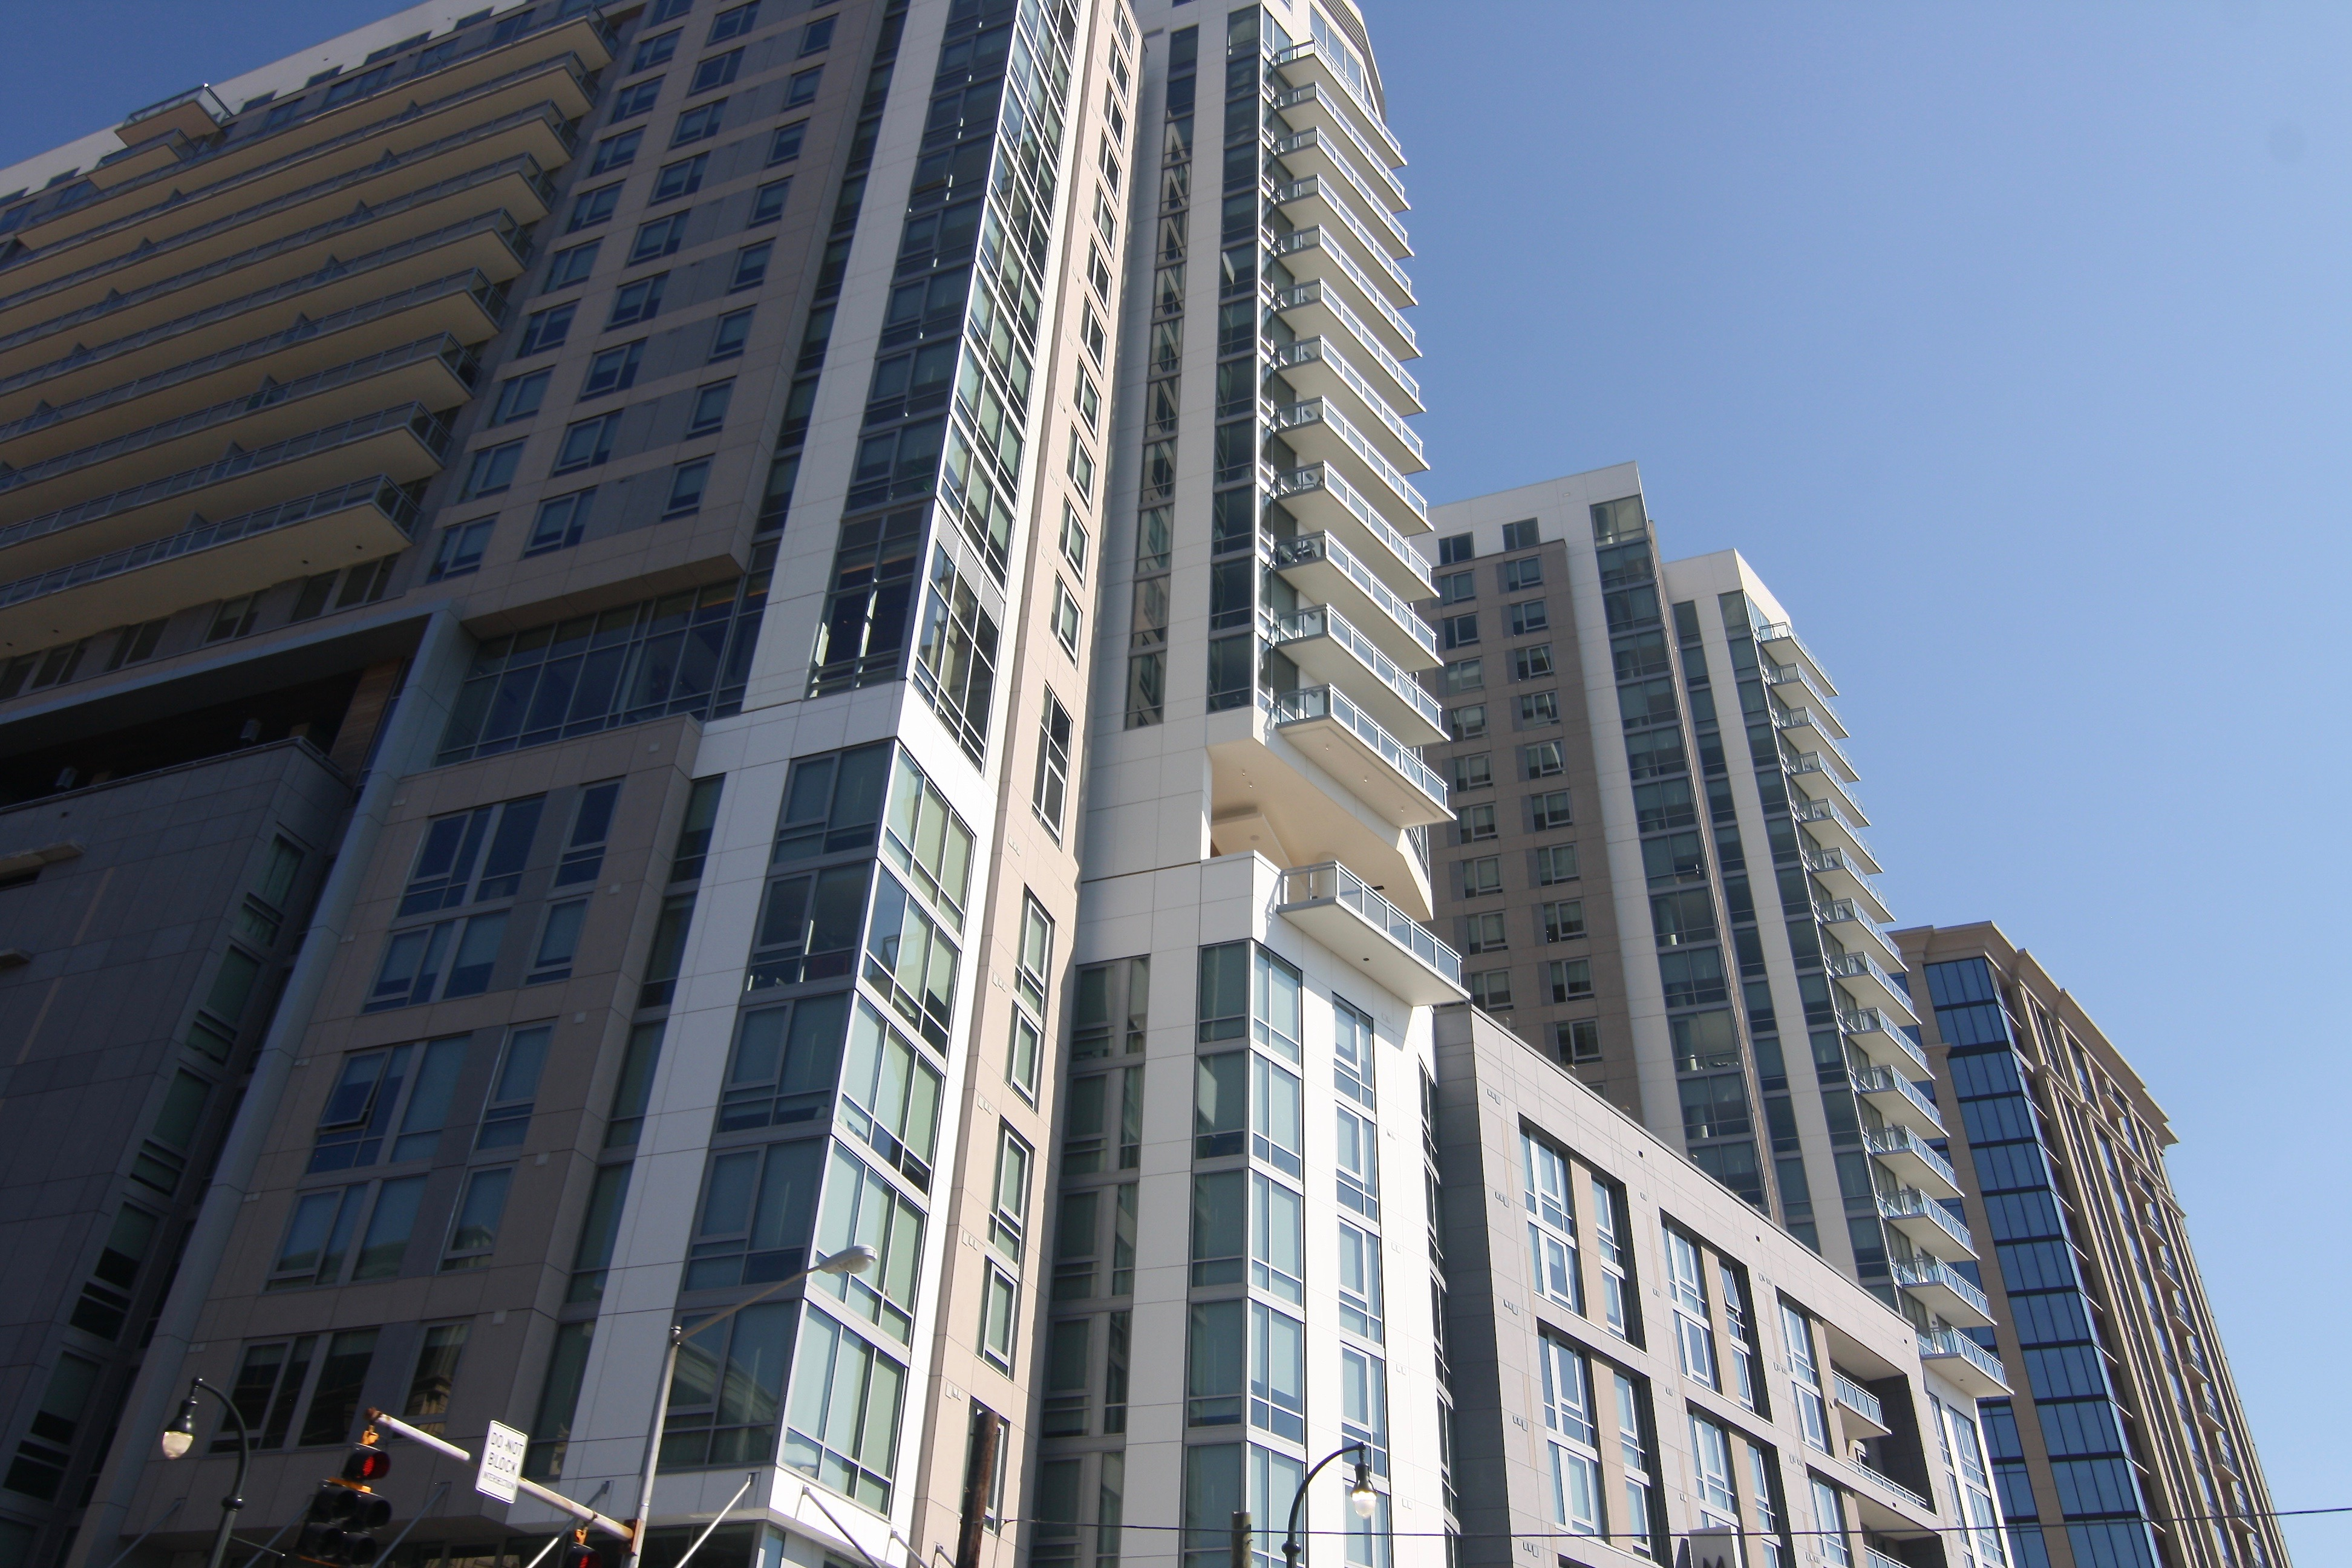 Two tower developments show in the sunshine, with balconies and many glassy windows.